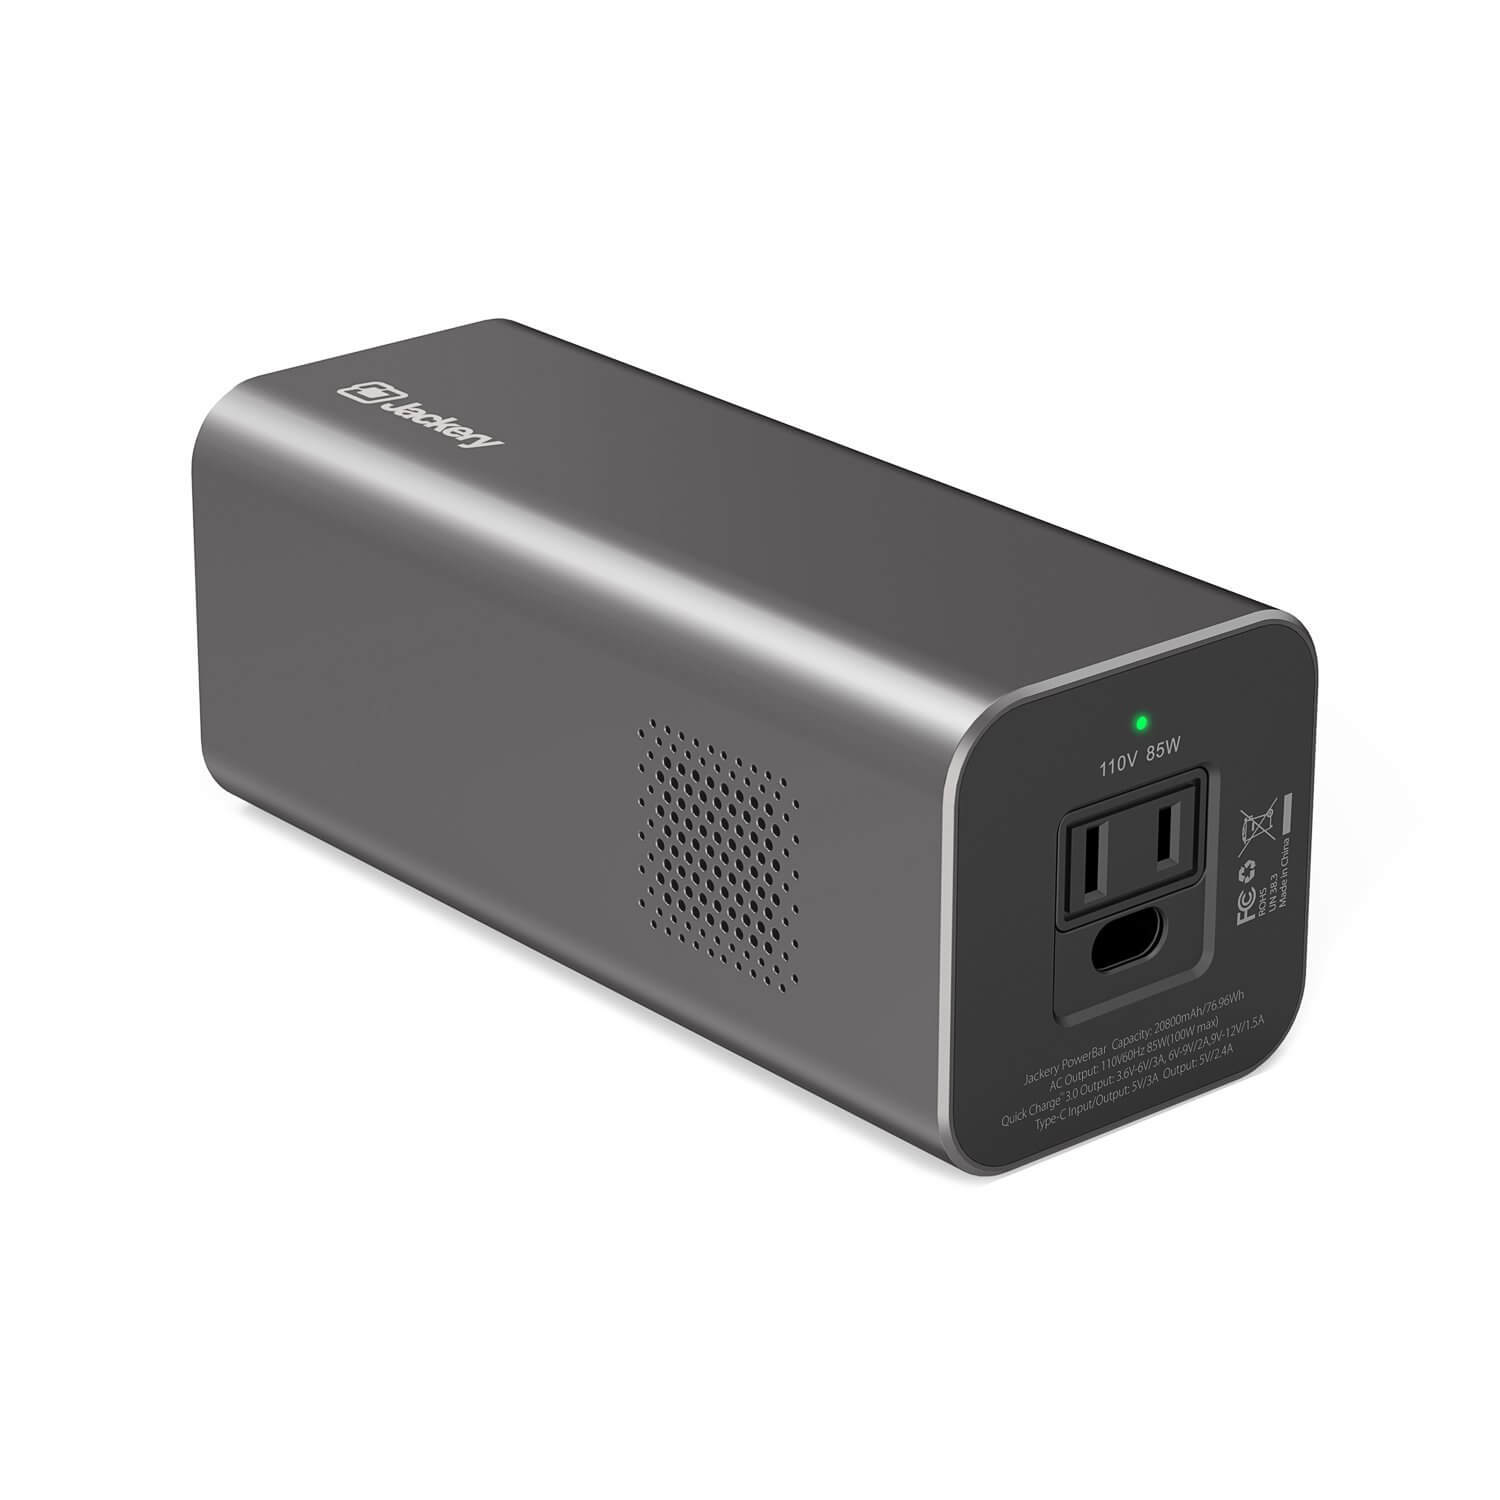 Review of the Jackery PowerBar 77Wh/20800mAh 85W